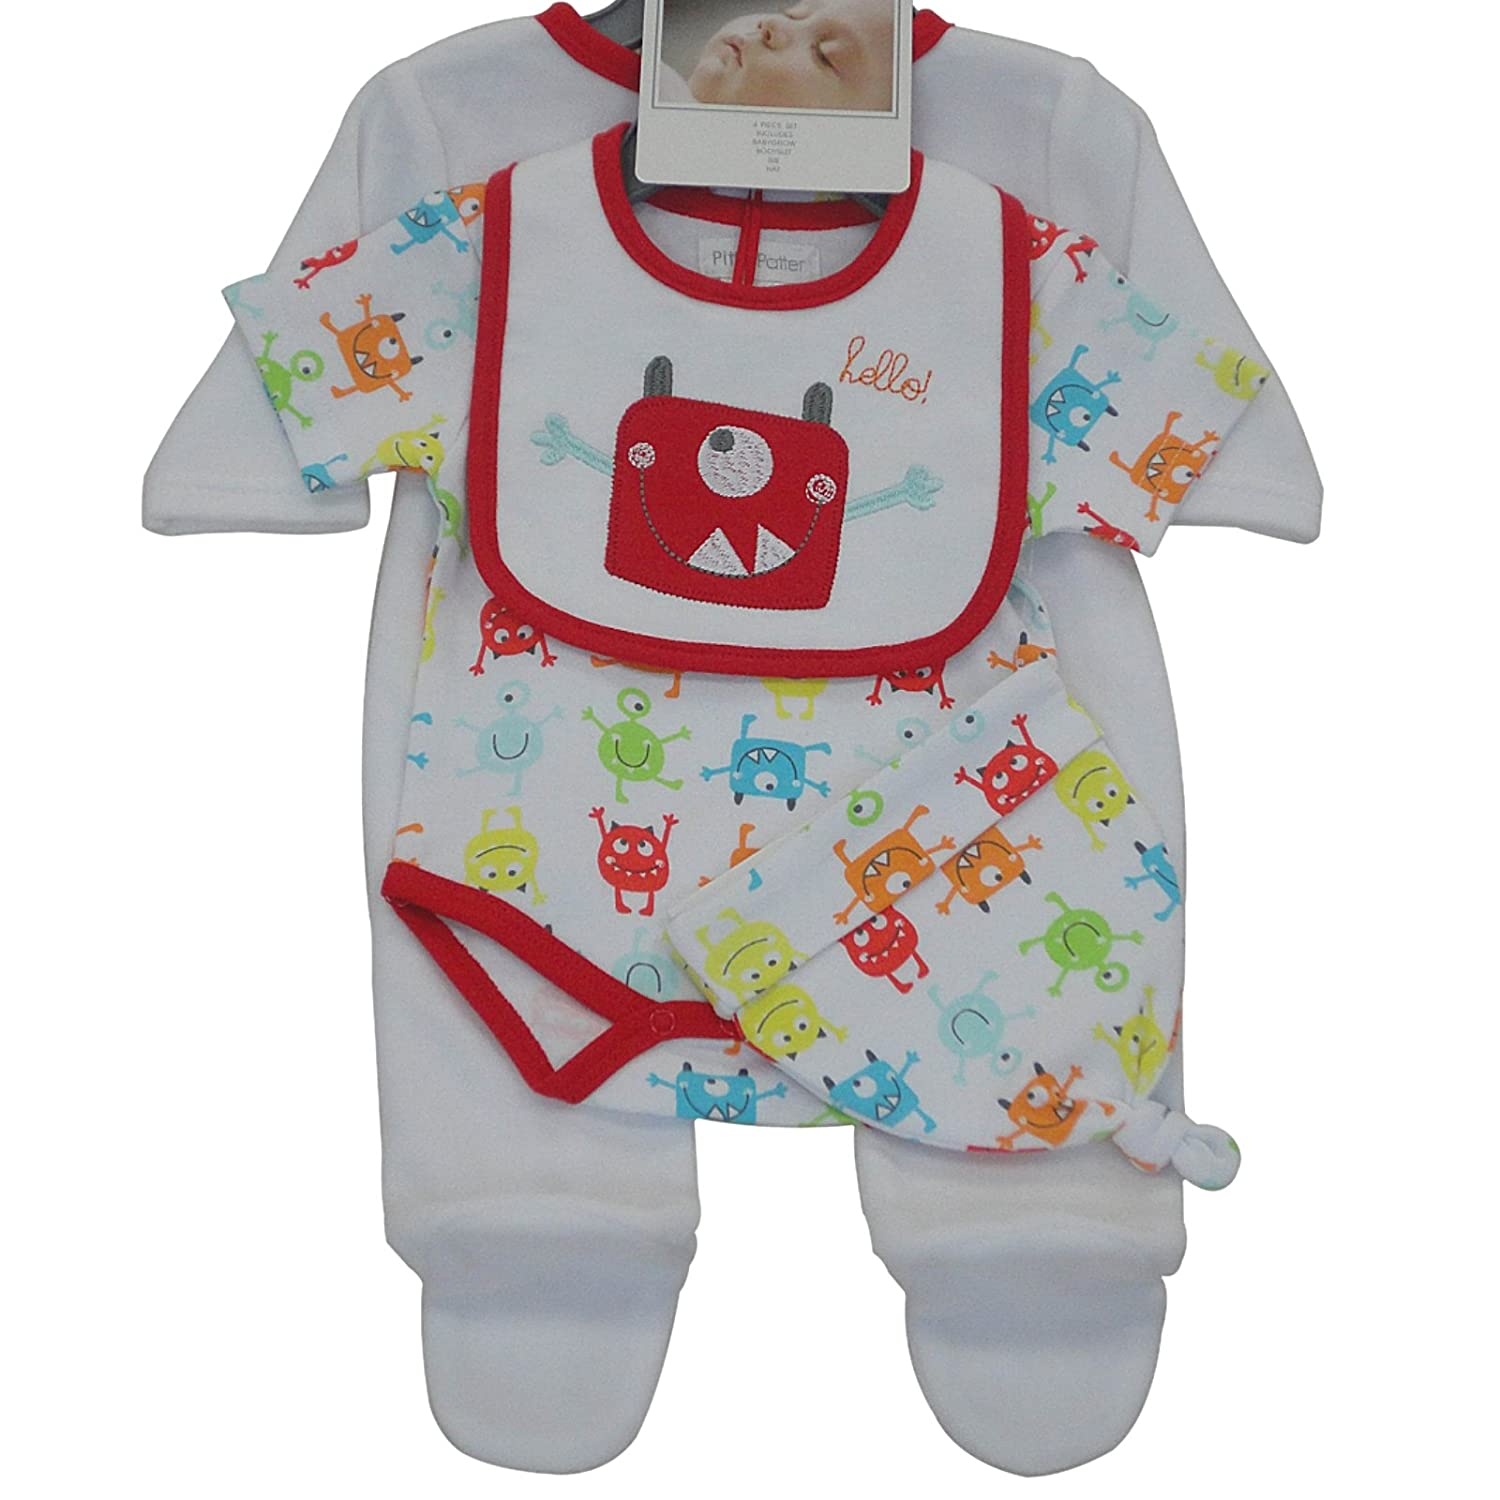 Pitter Patter Baby Gifts Coordinato Bianco/Rosso 3-6 Mesi (62/68 cm) 31015_Blancoyrojo-3-6meses